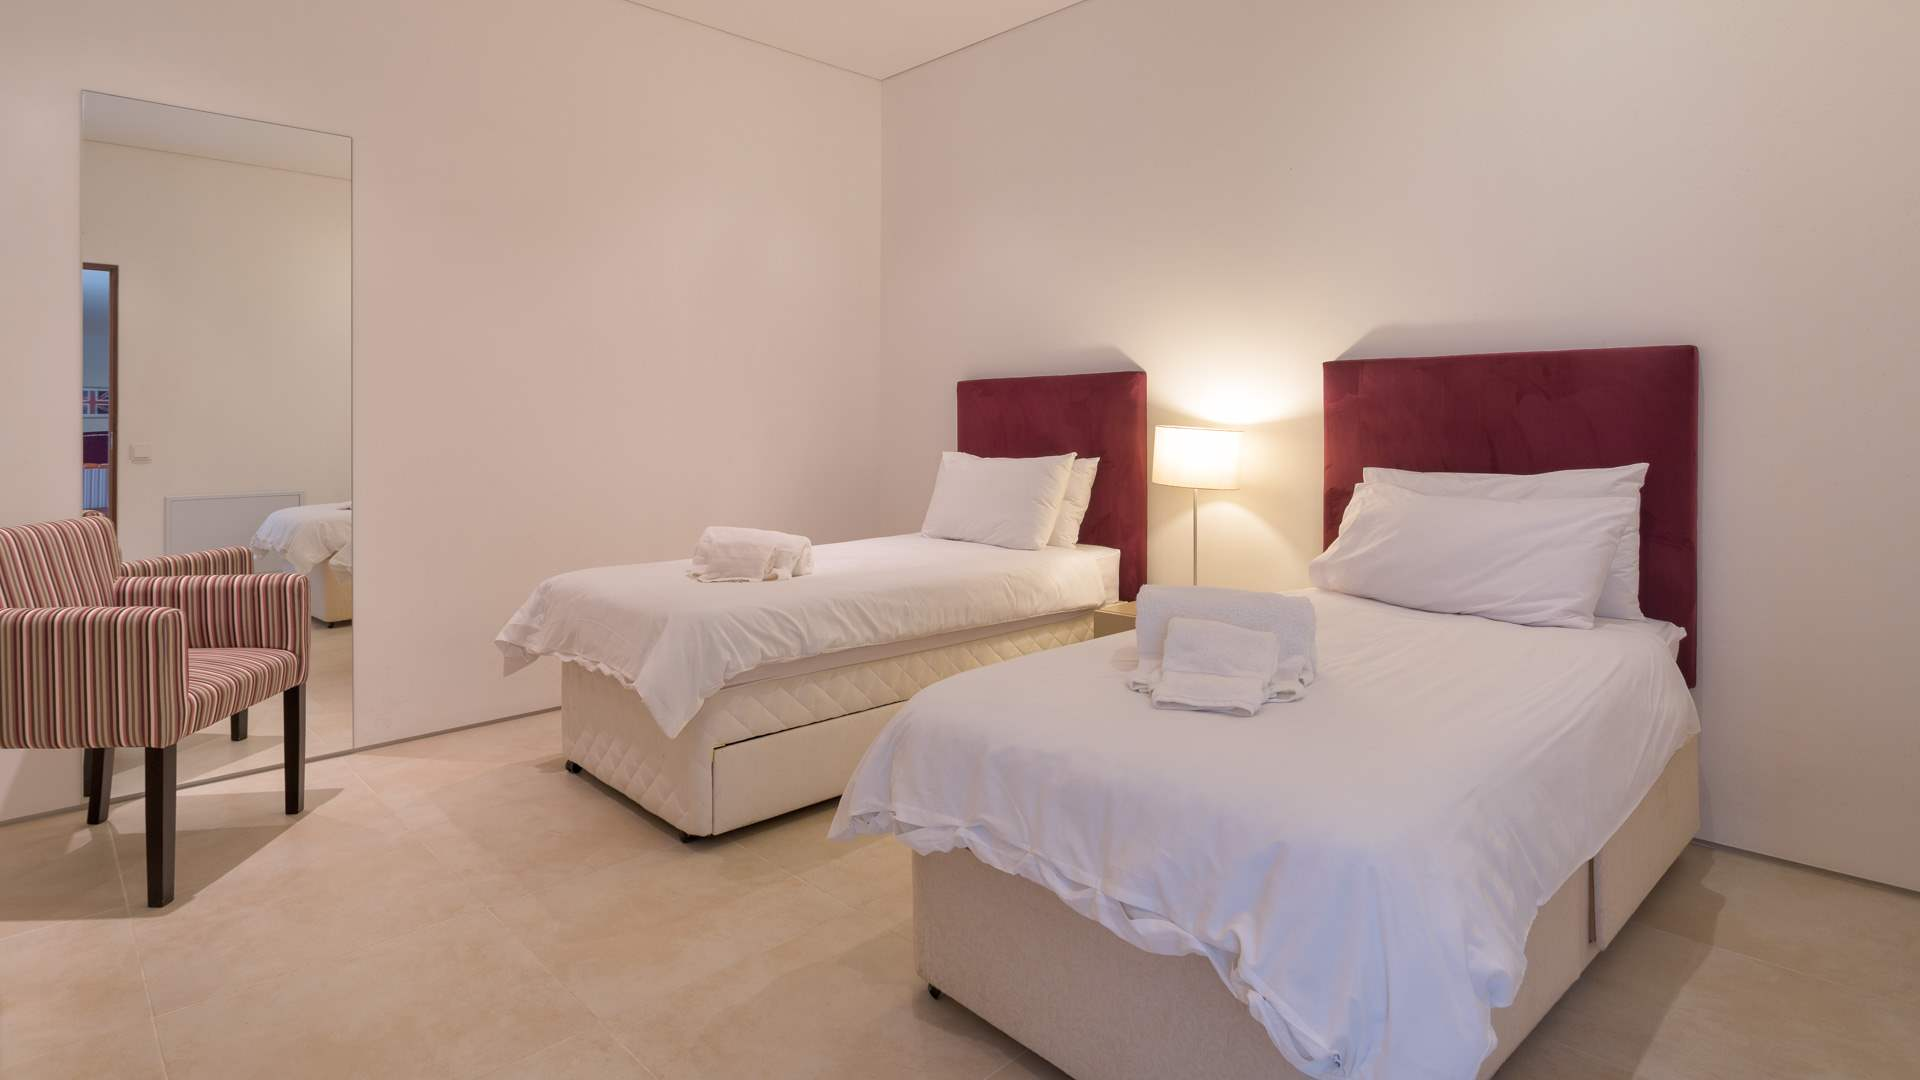 Villa Felicity, 4 bedroom villa in Vale do Lobo, Algarve Photo #22